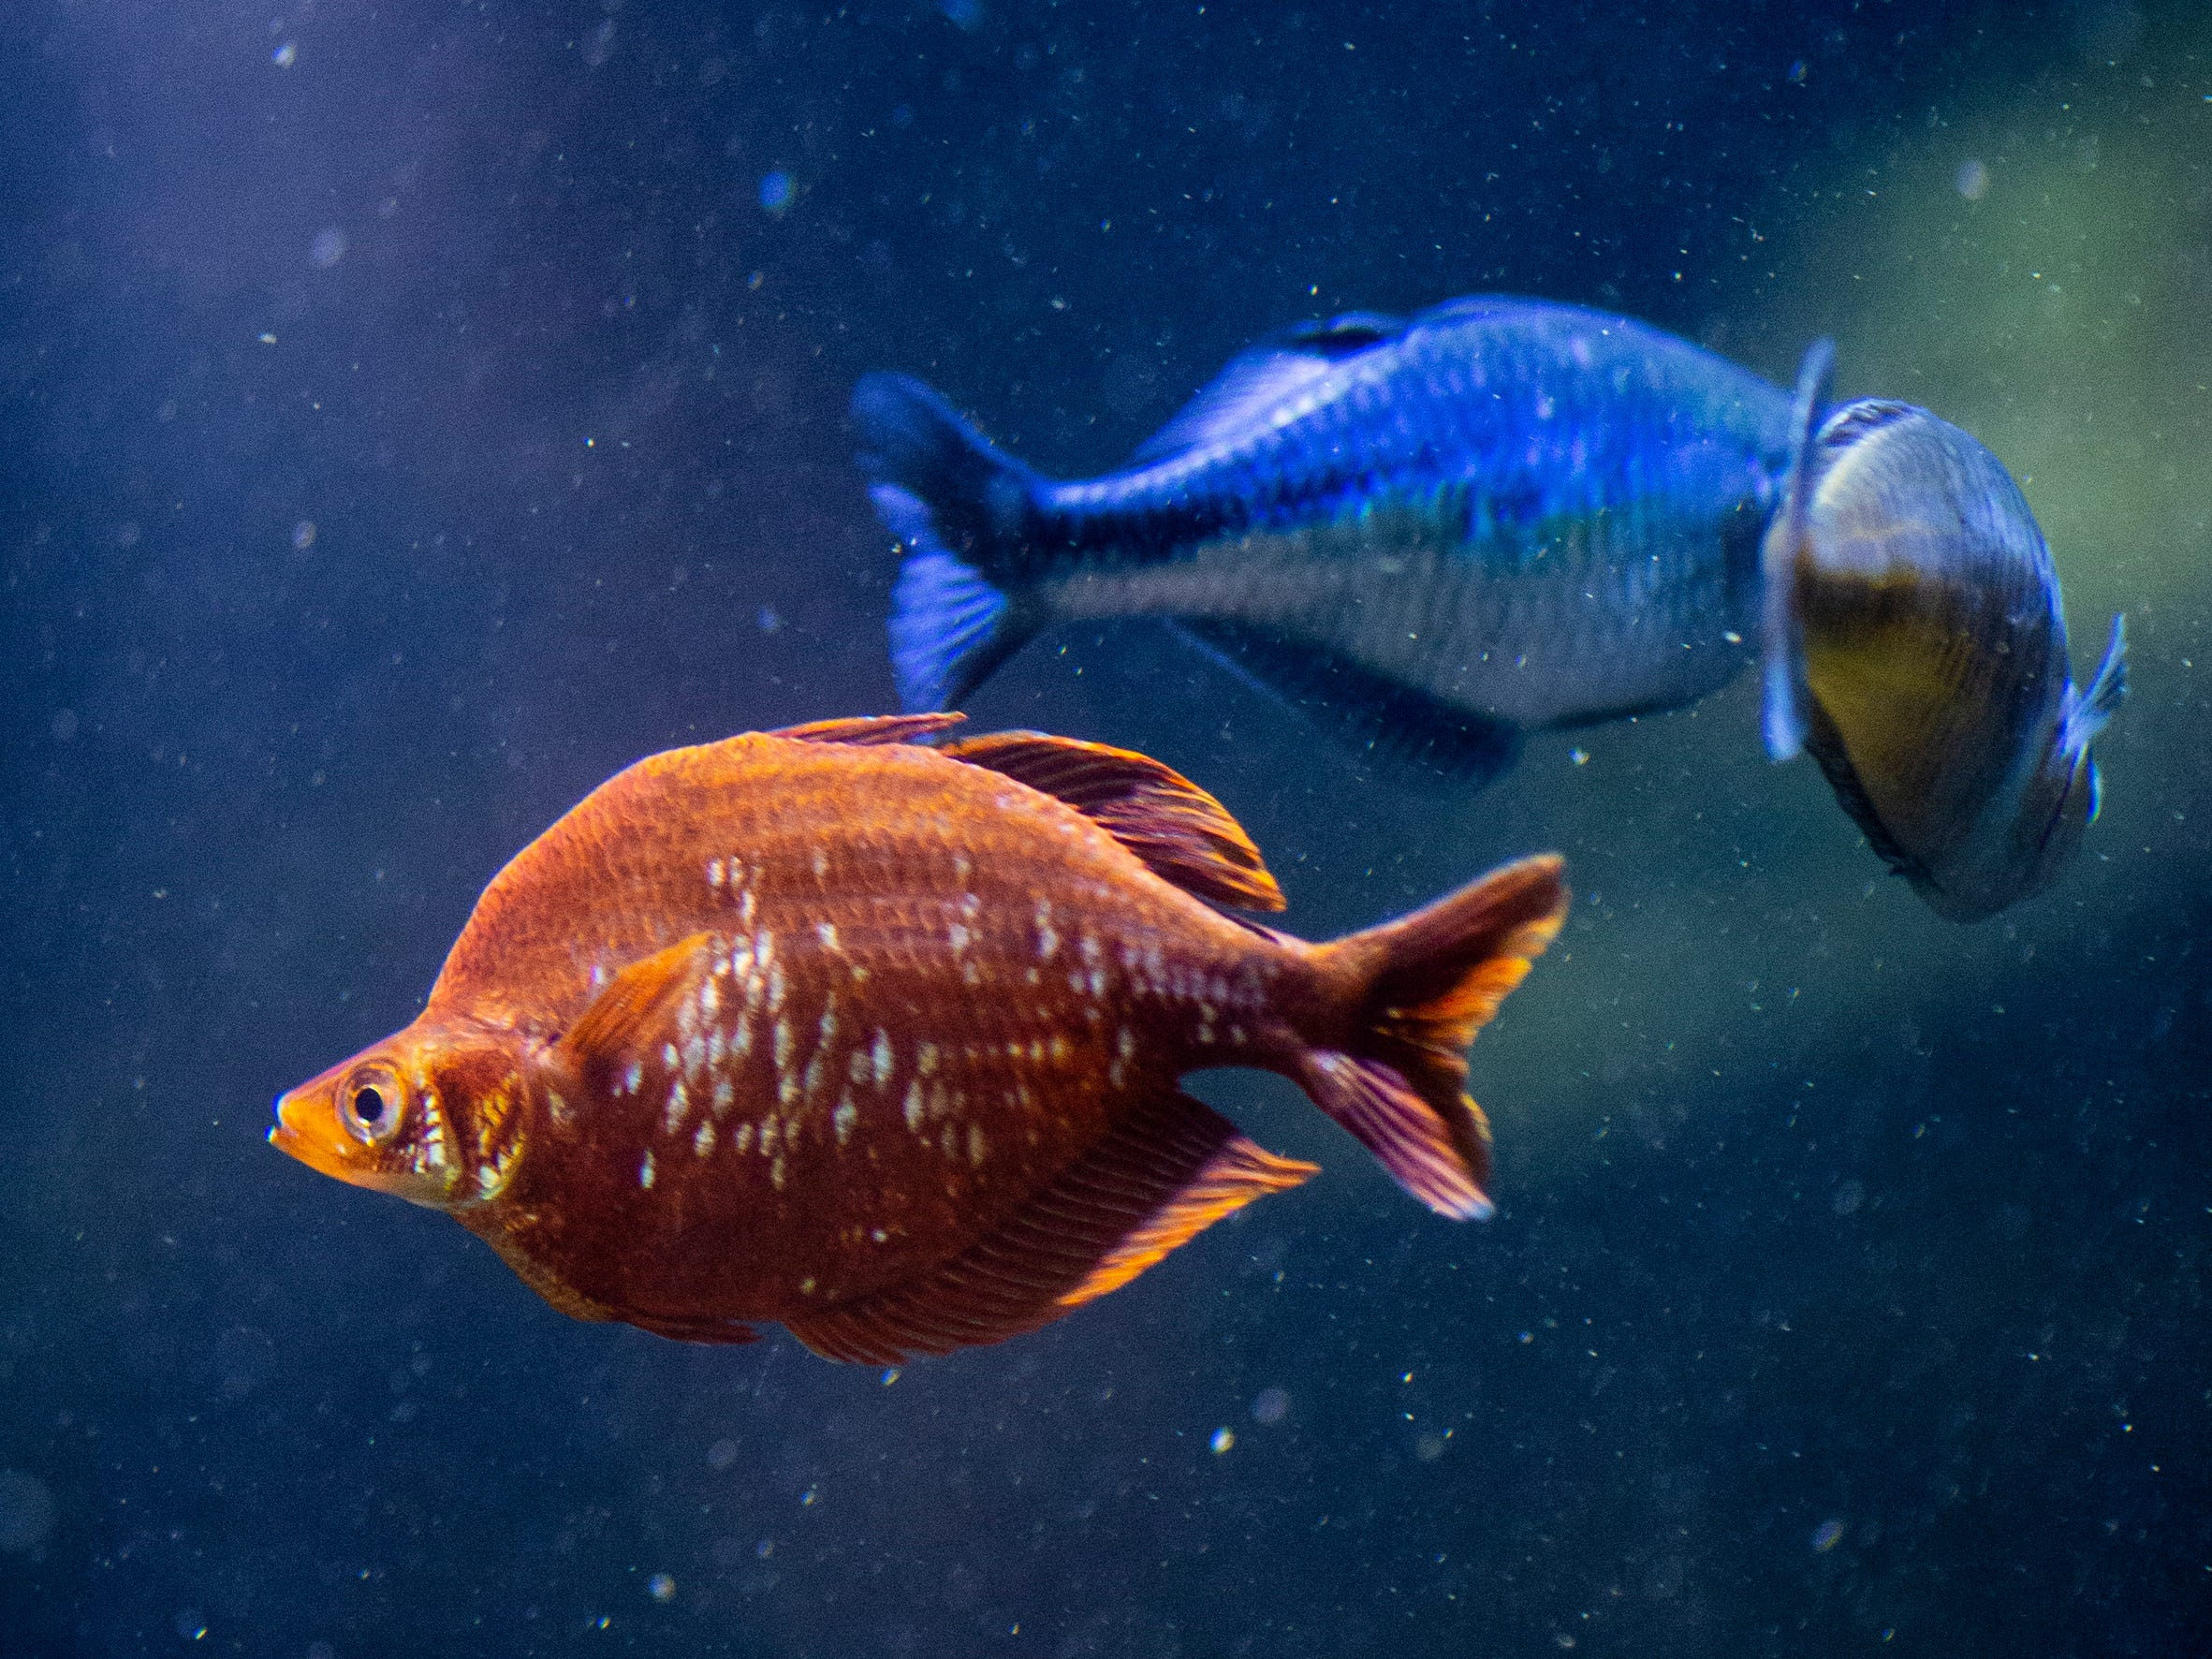 Red Rainbowfish and blue Lake Kamaka rainbowfish swim in the Australia tank in the Freshwater Falls exhibit at Newport Aquarium Thursday, April 11, 2019 in Newport, Ky.  There are 15 species of Rainbowfish in Australia.